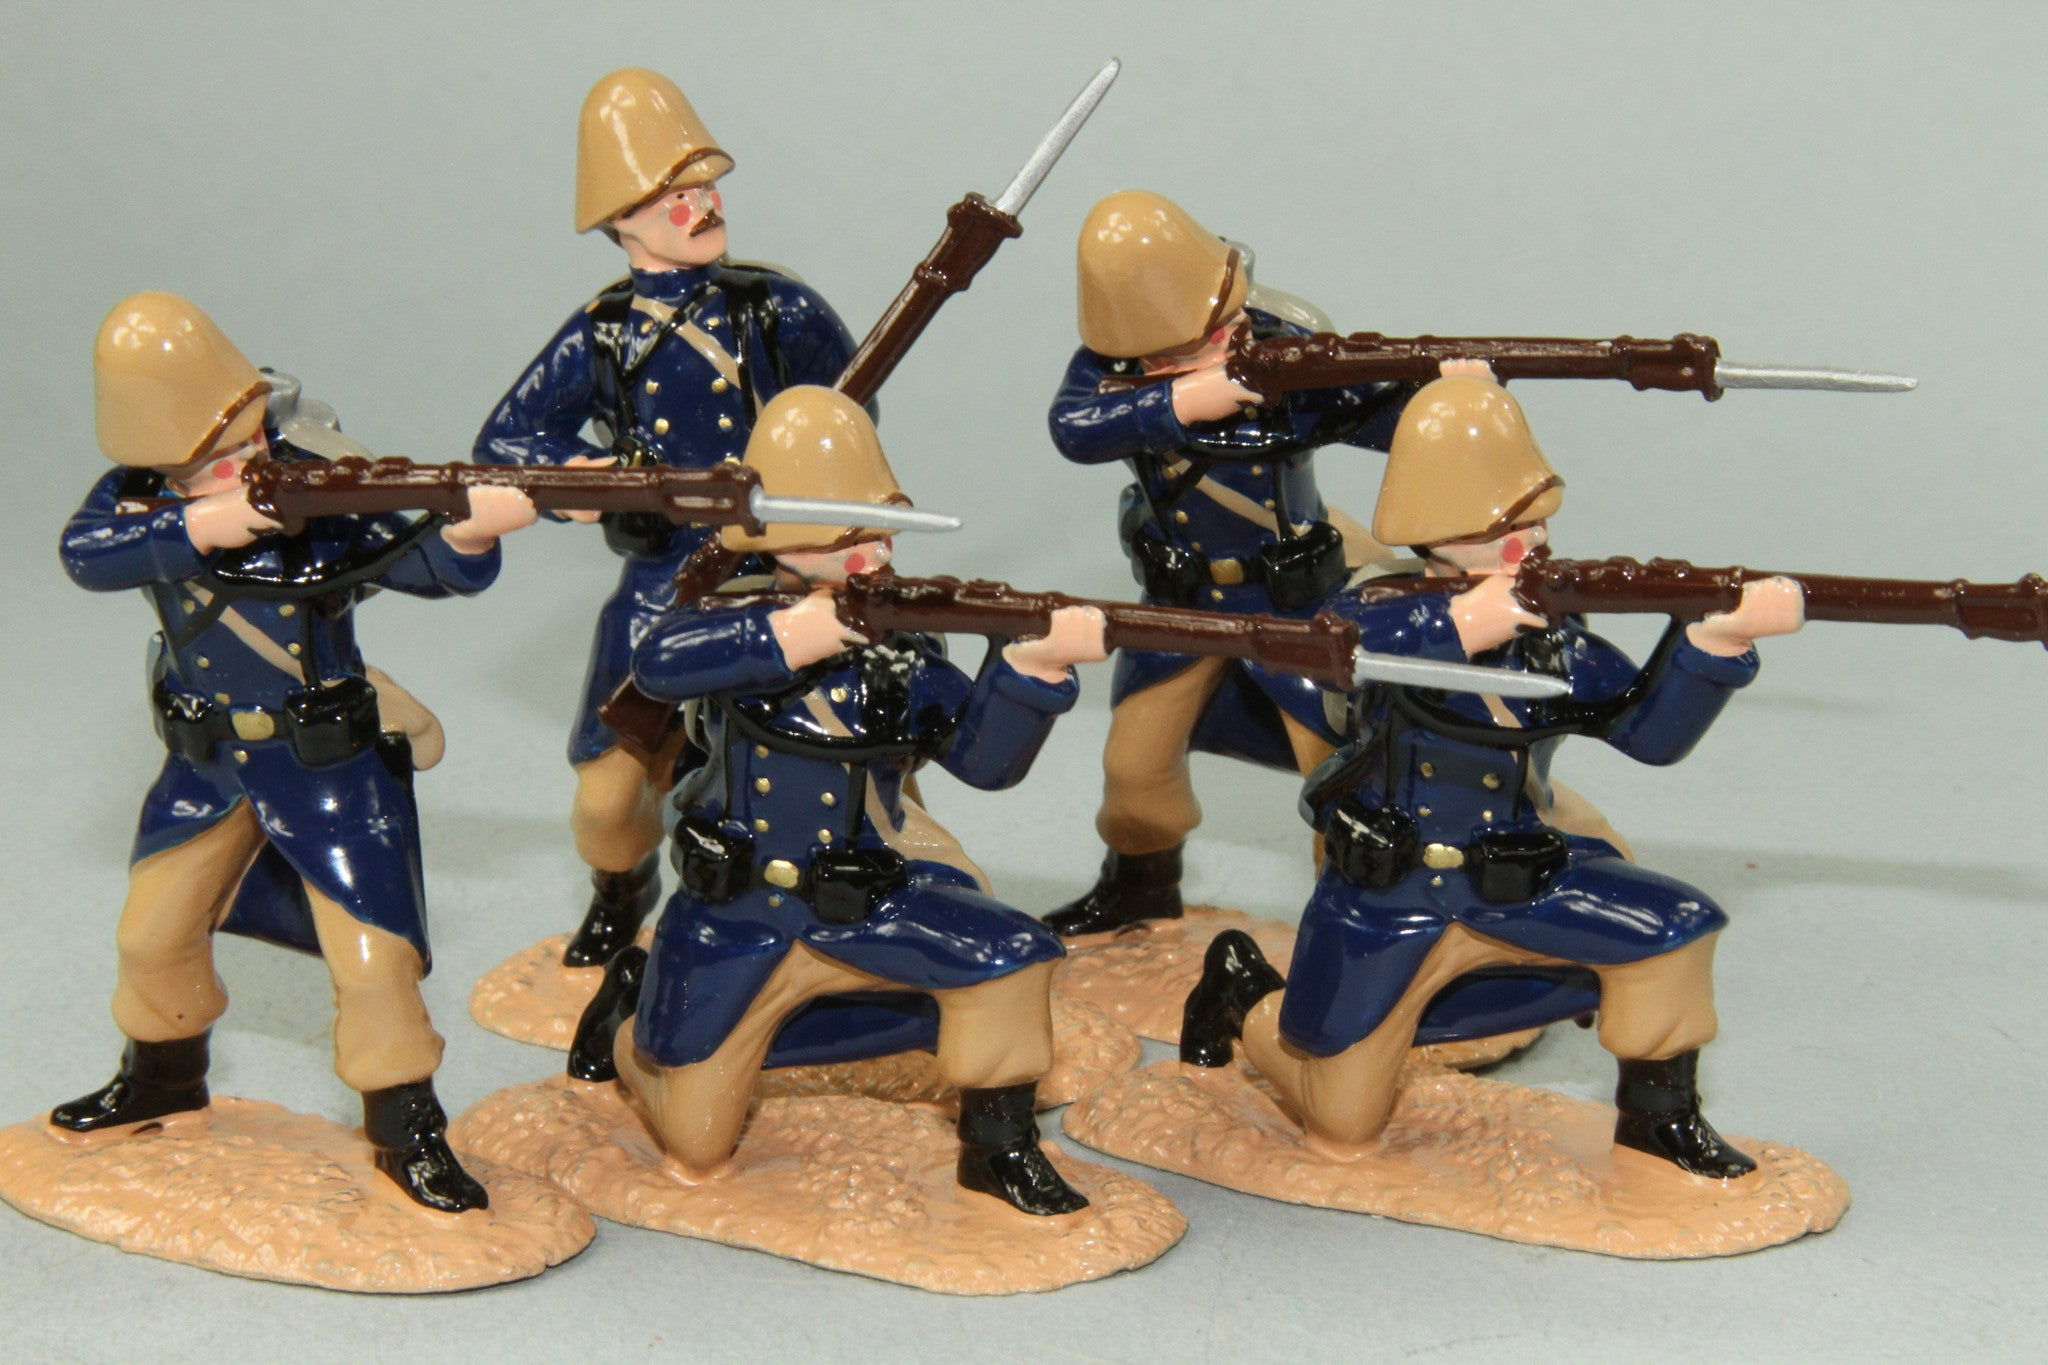 WW111 - French Foreign Legion, Gallipoli 1915. Made by Regal Toy Soldiers - Piers Christian Toy Soldiers